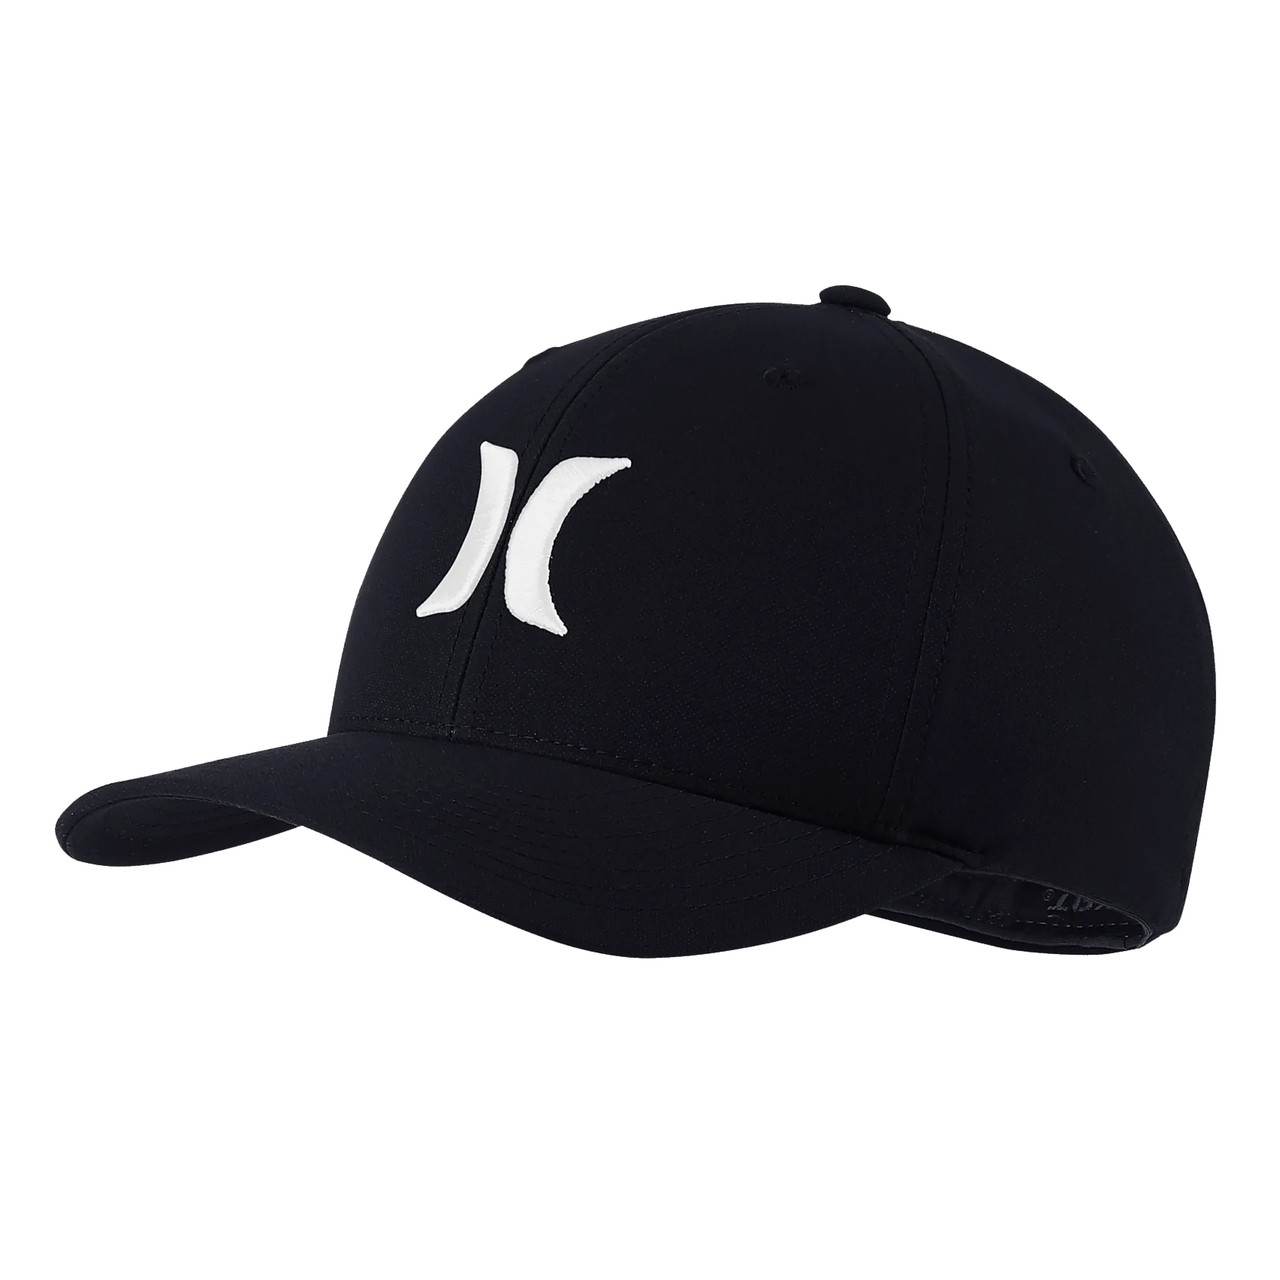 619c994d1 Hurley Hat - One and Only Dri-Fit - Black/White